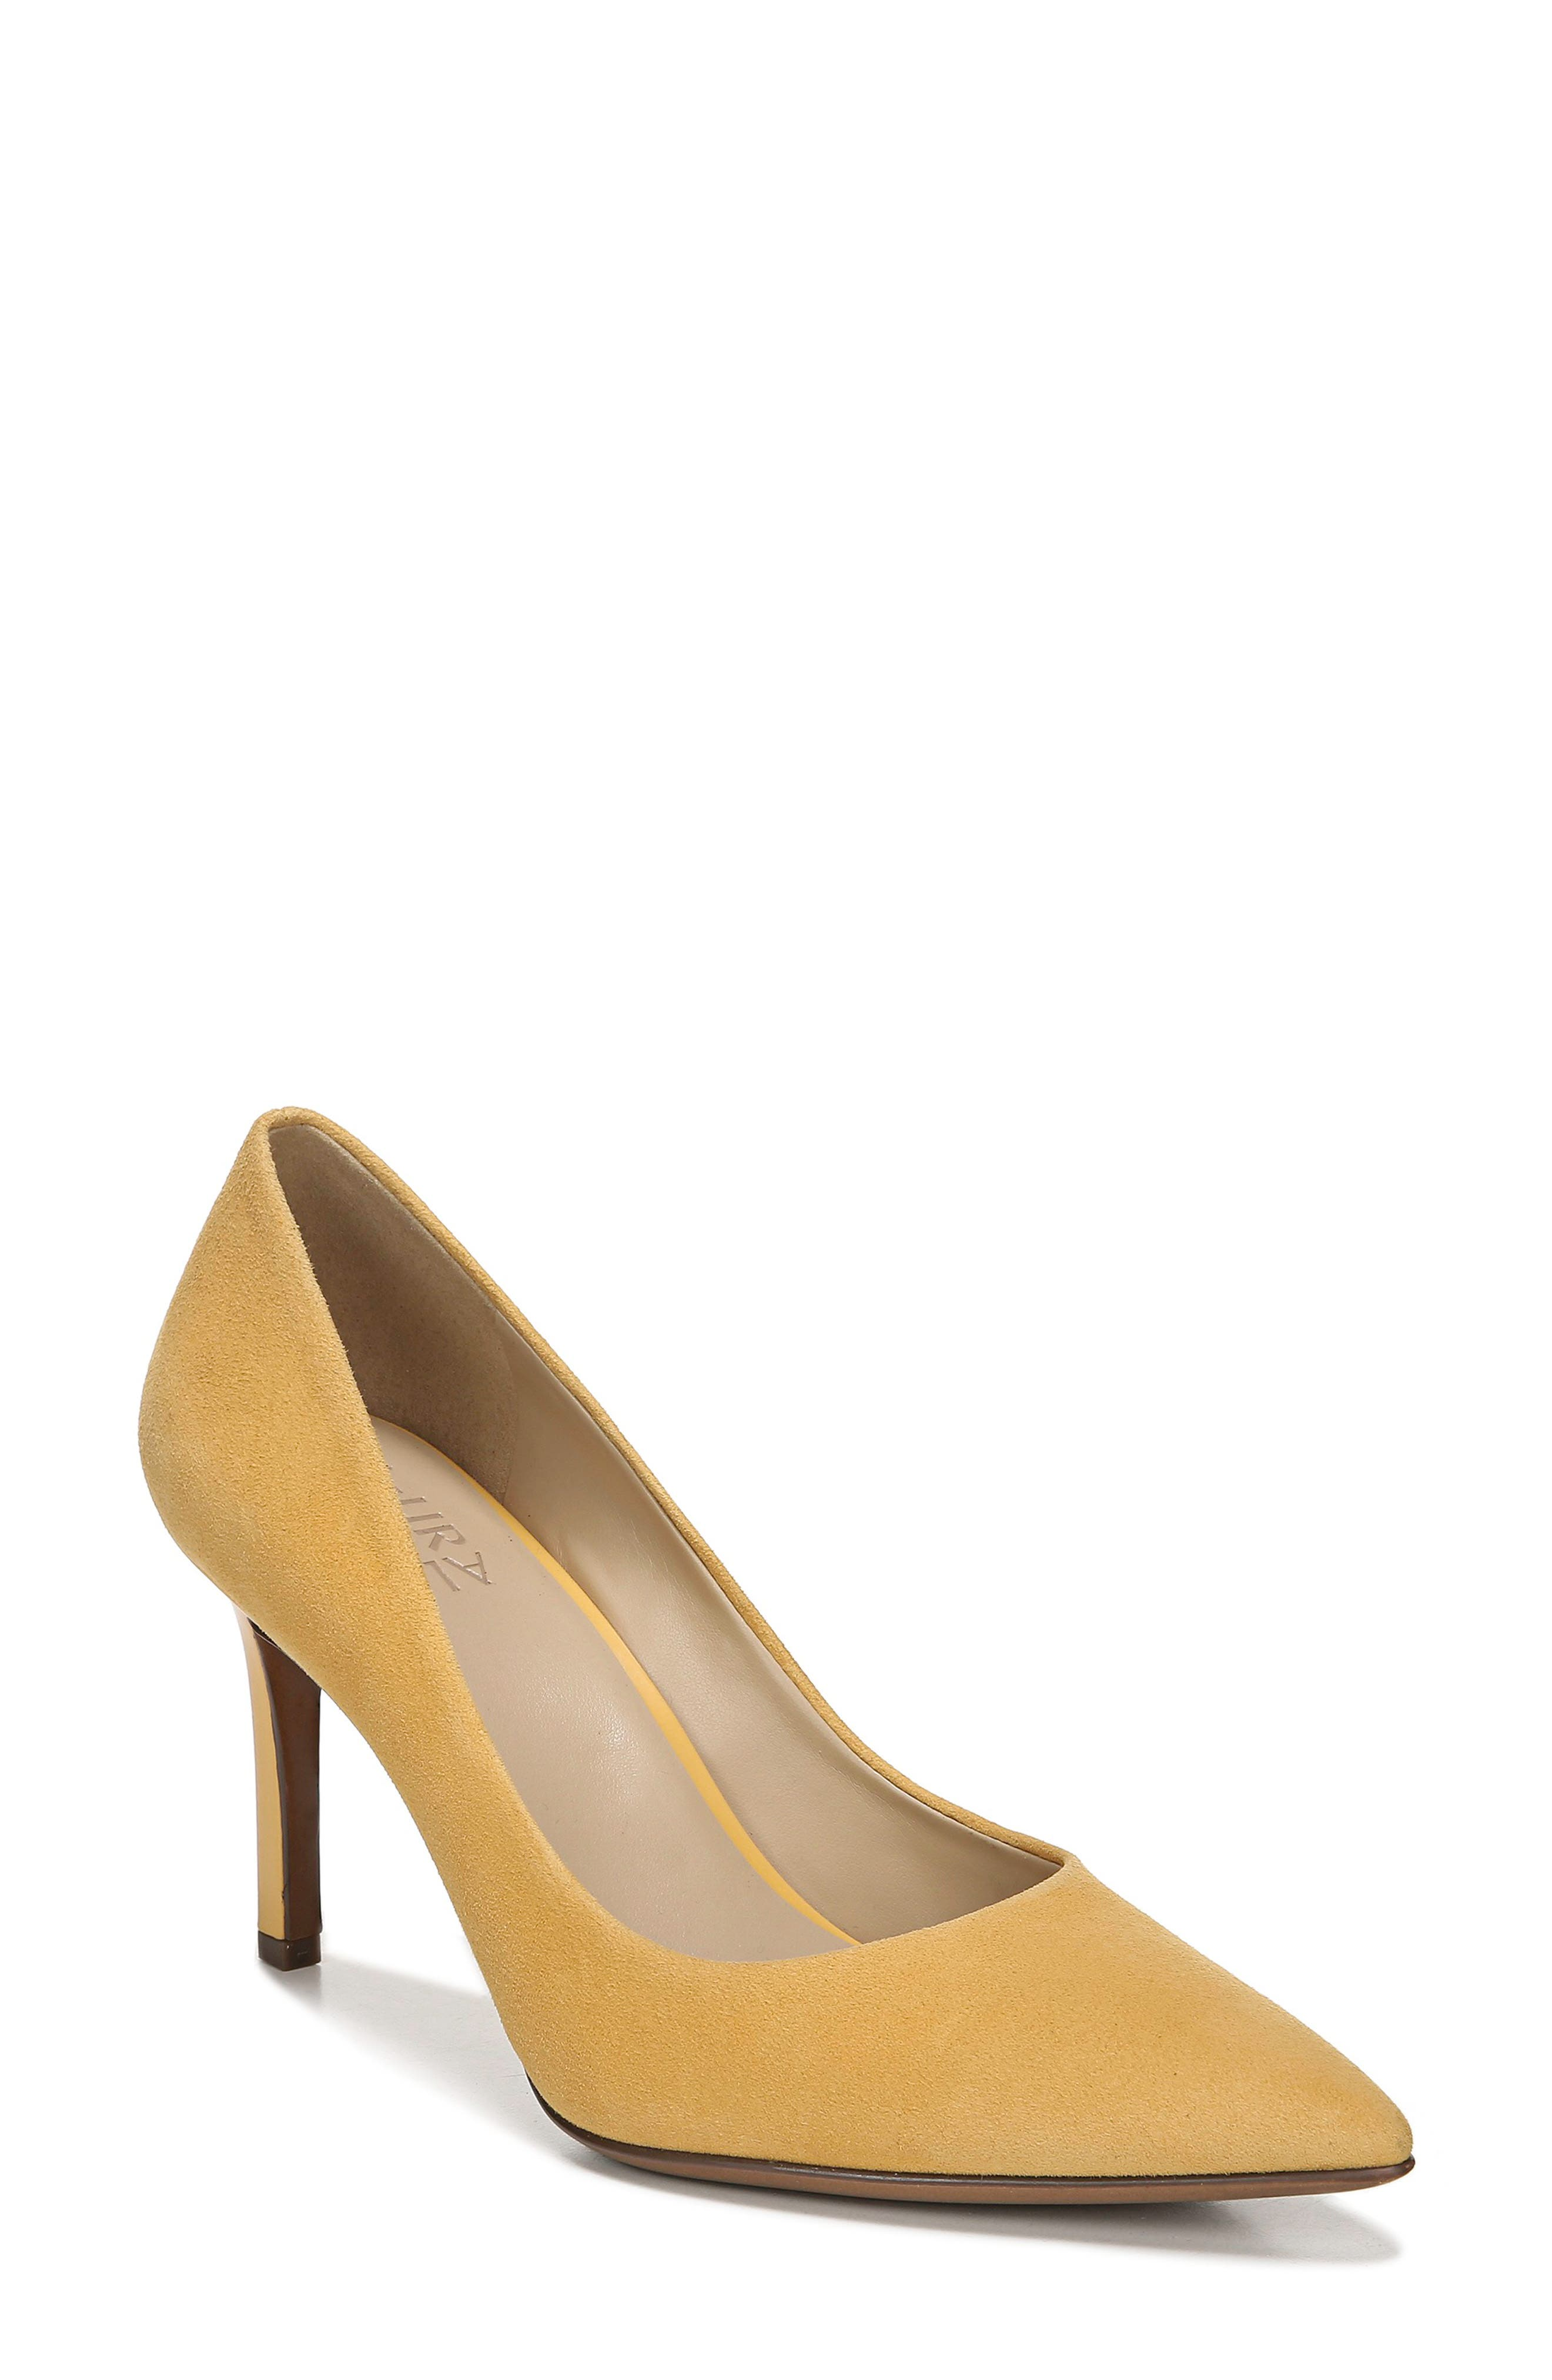 Naturalizer Anna Pump, Yellow